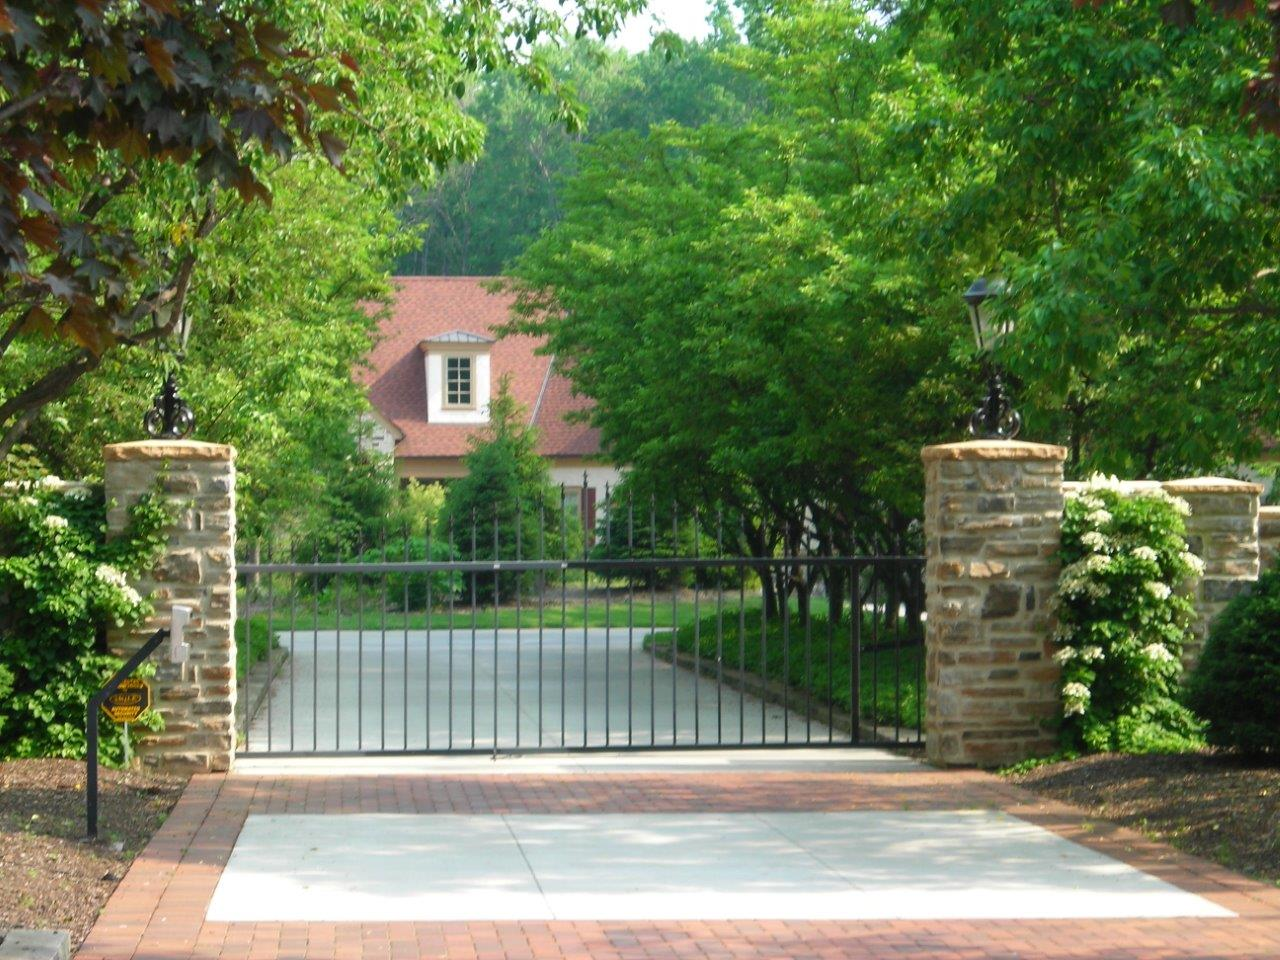 Residential Gate Entry System